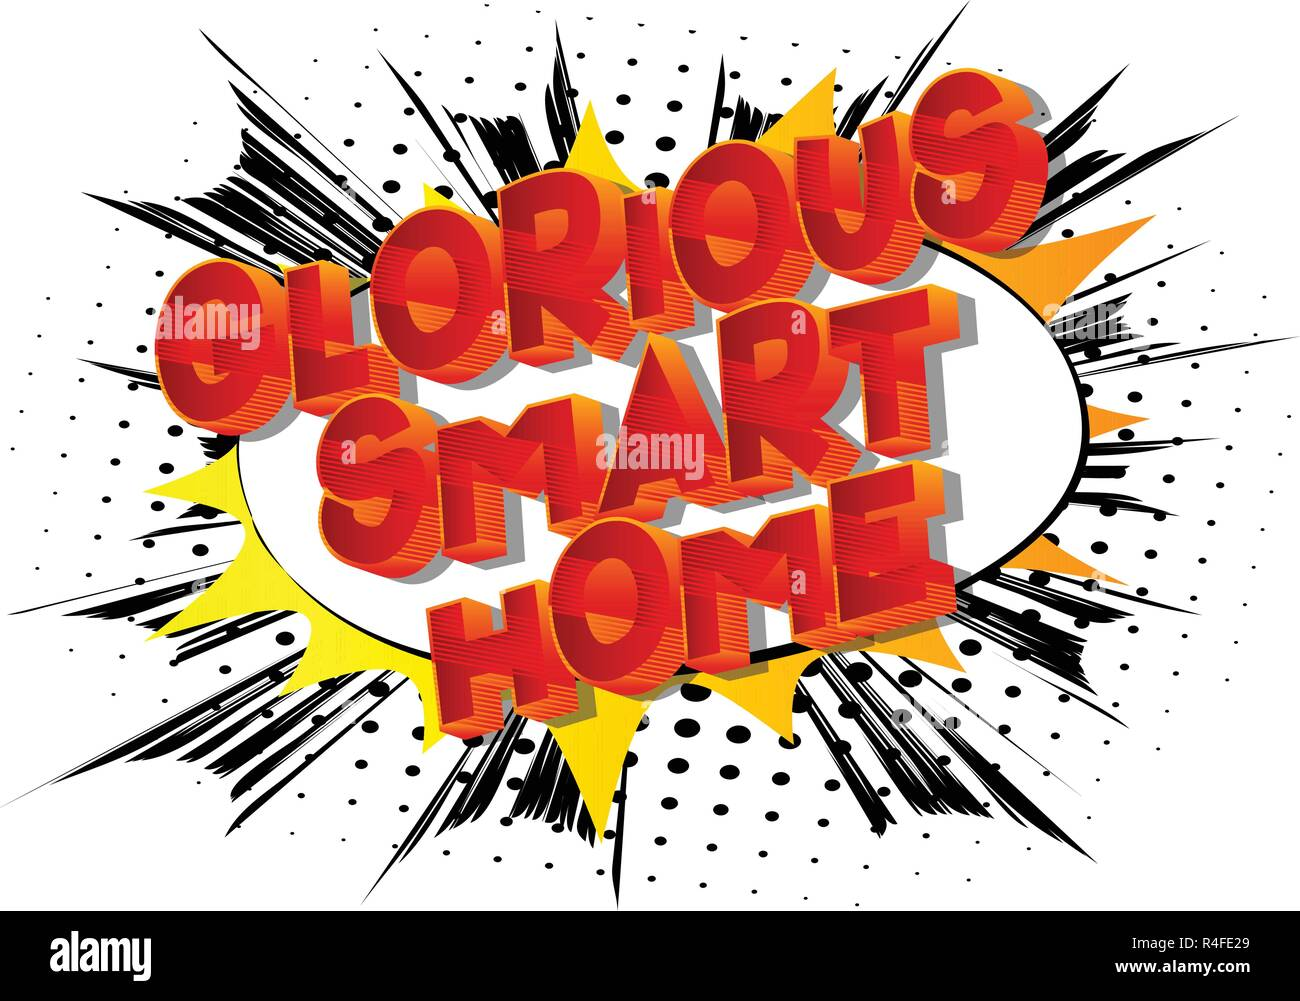 Glorious Smart Home - Vector illustrated comic book style phrase on abstract background. - Stock Image